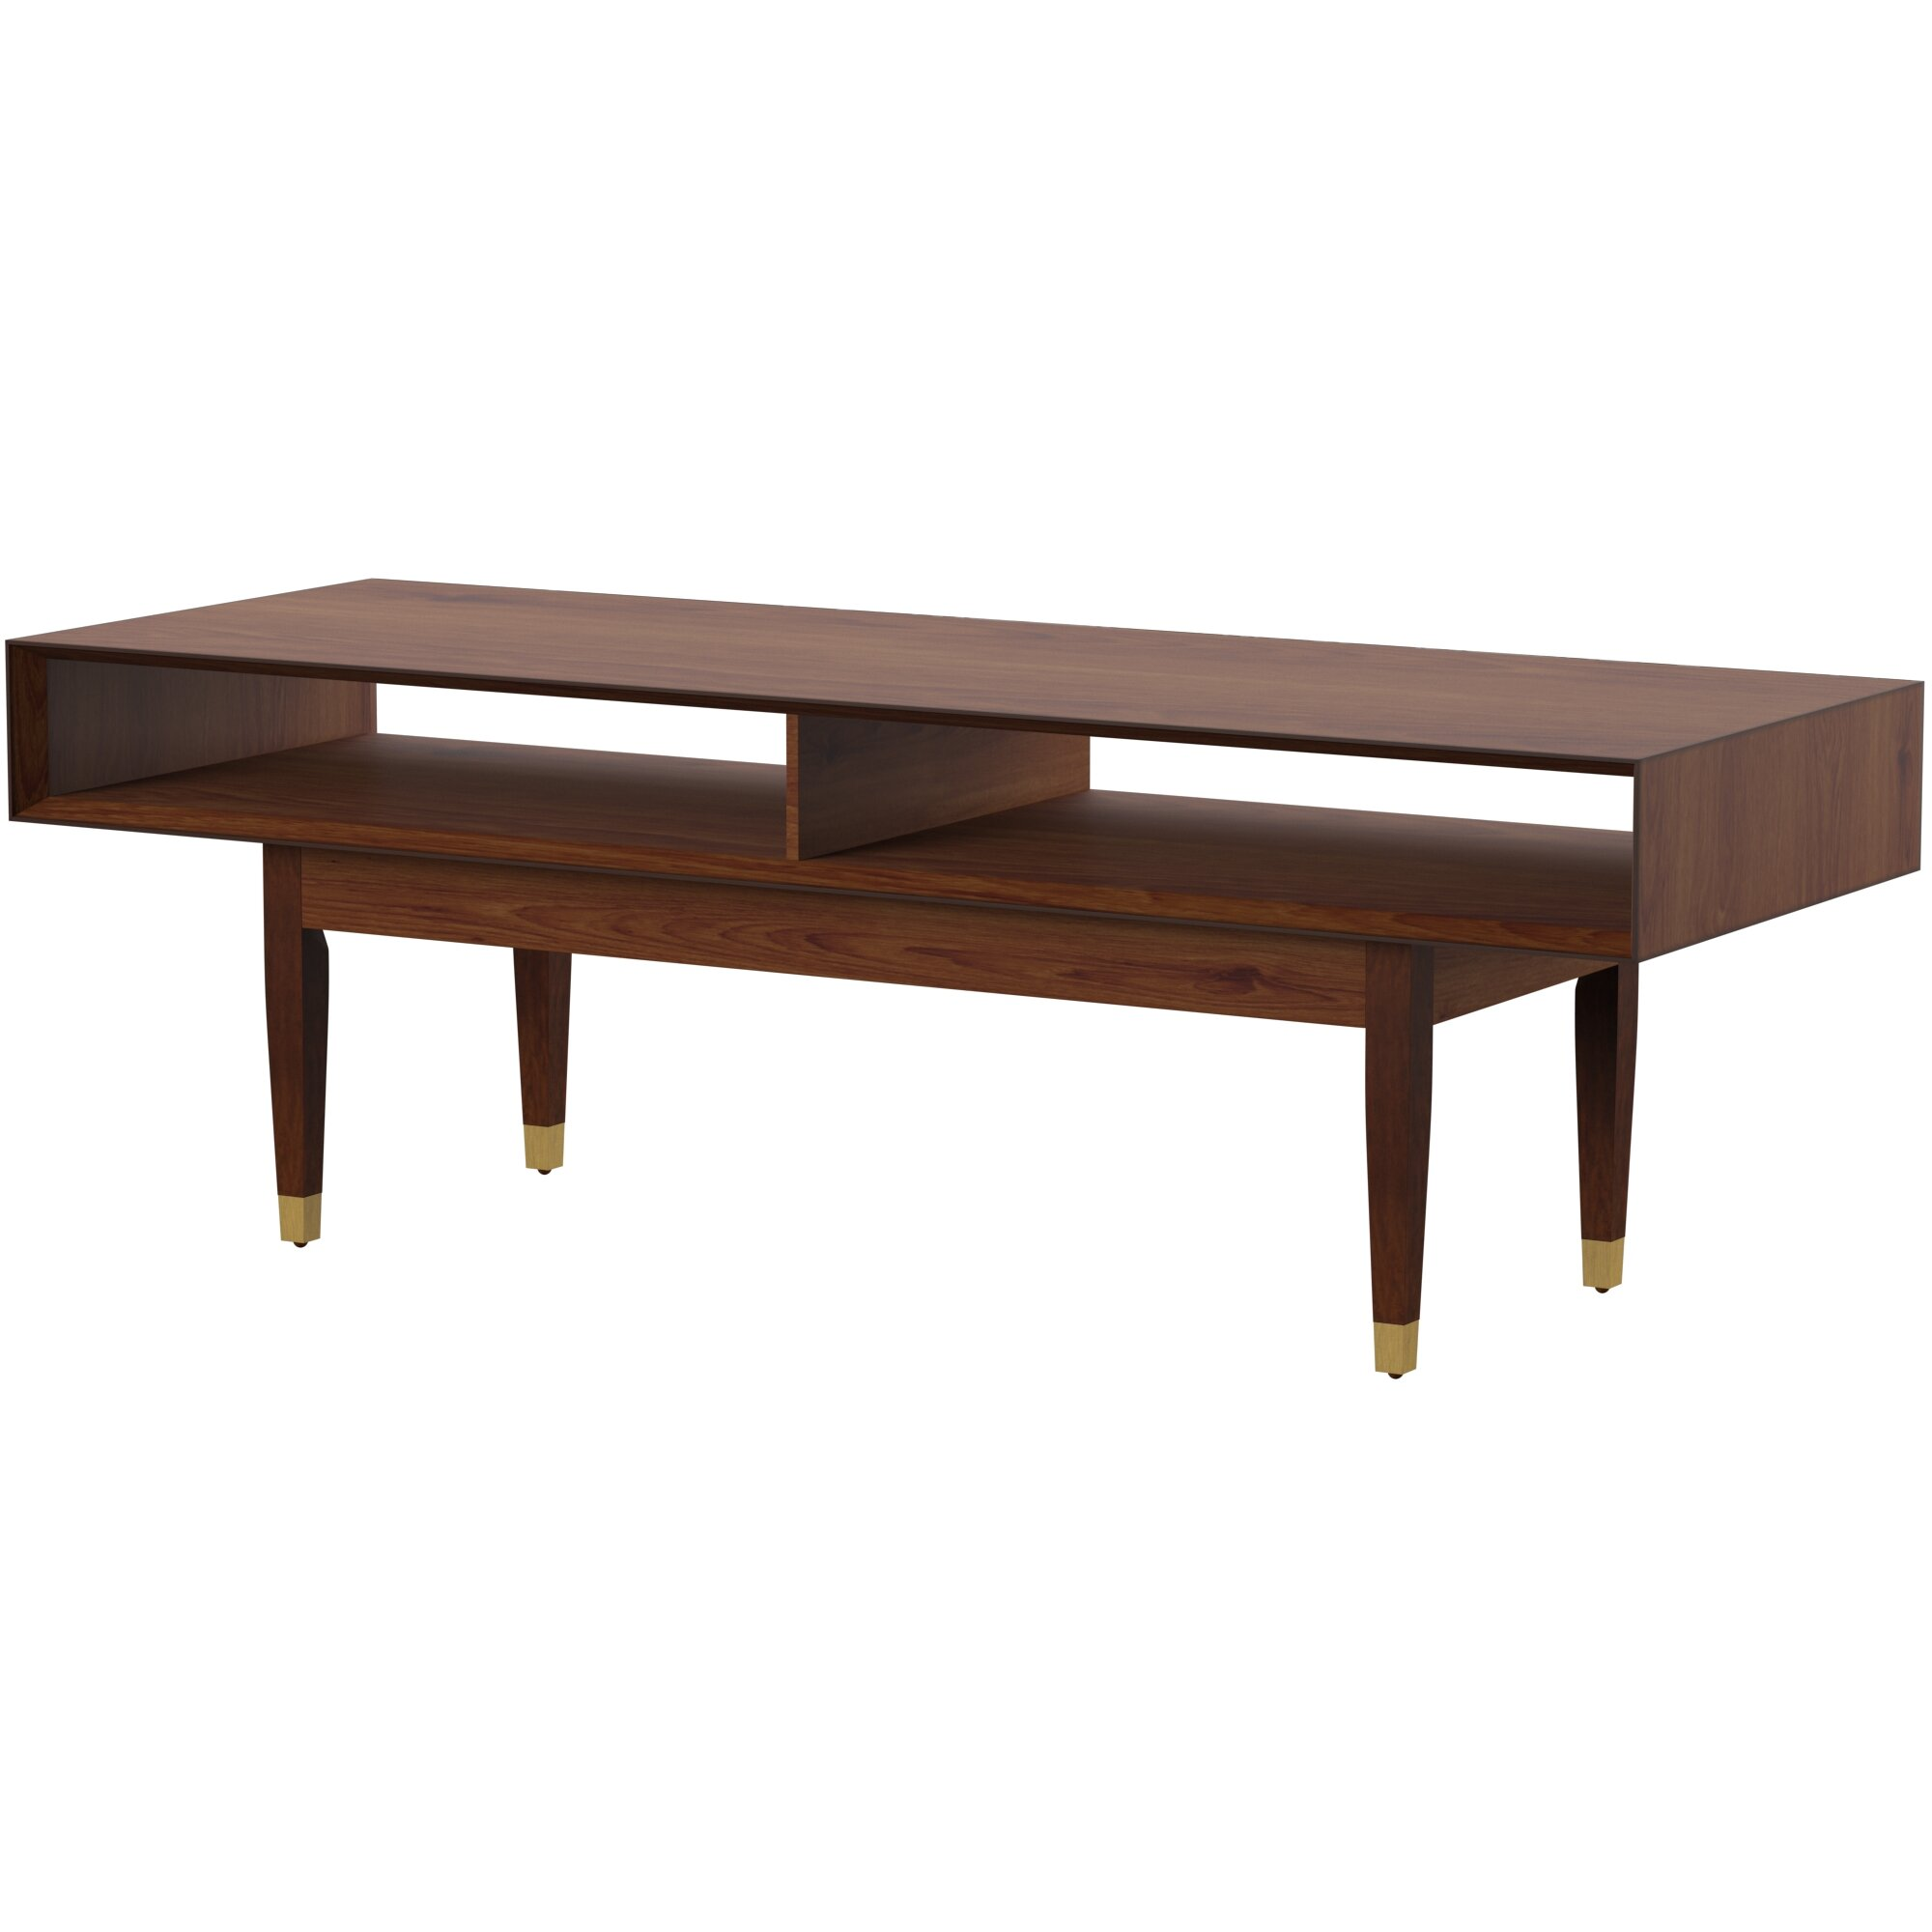 Superb West Hill Coffee Table With Storage Dailytribune Chair Design For Home Dailytribuneorg